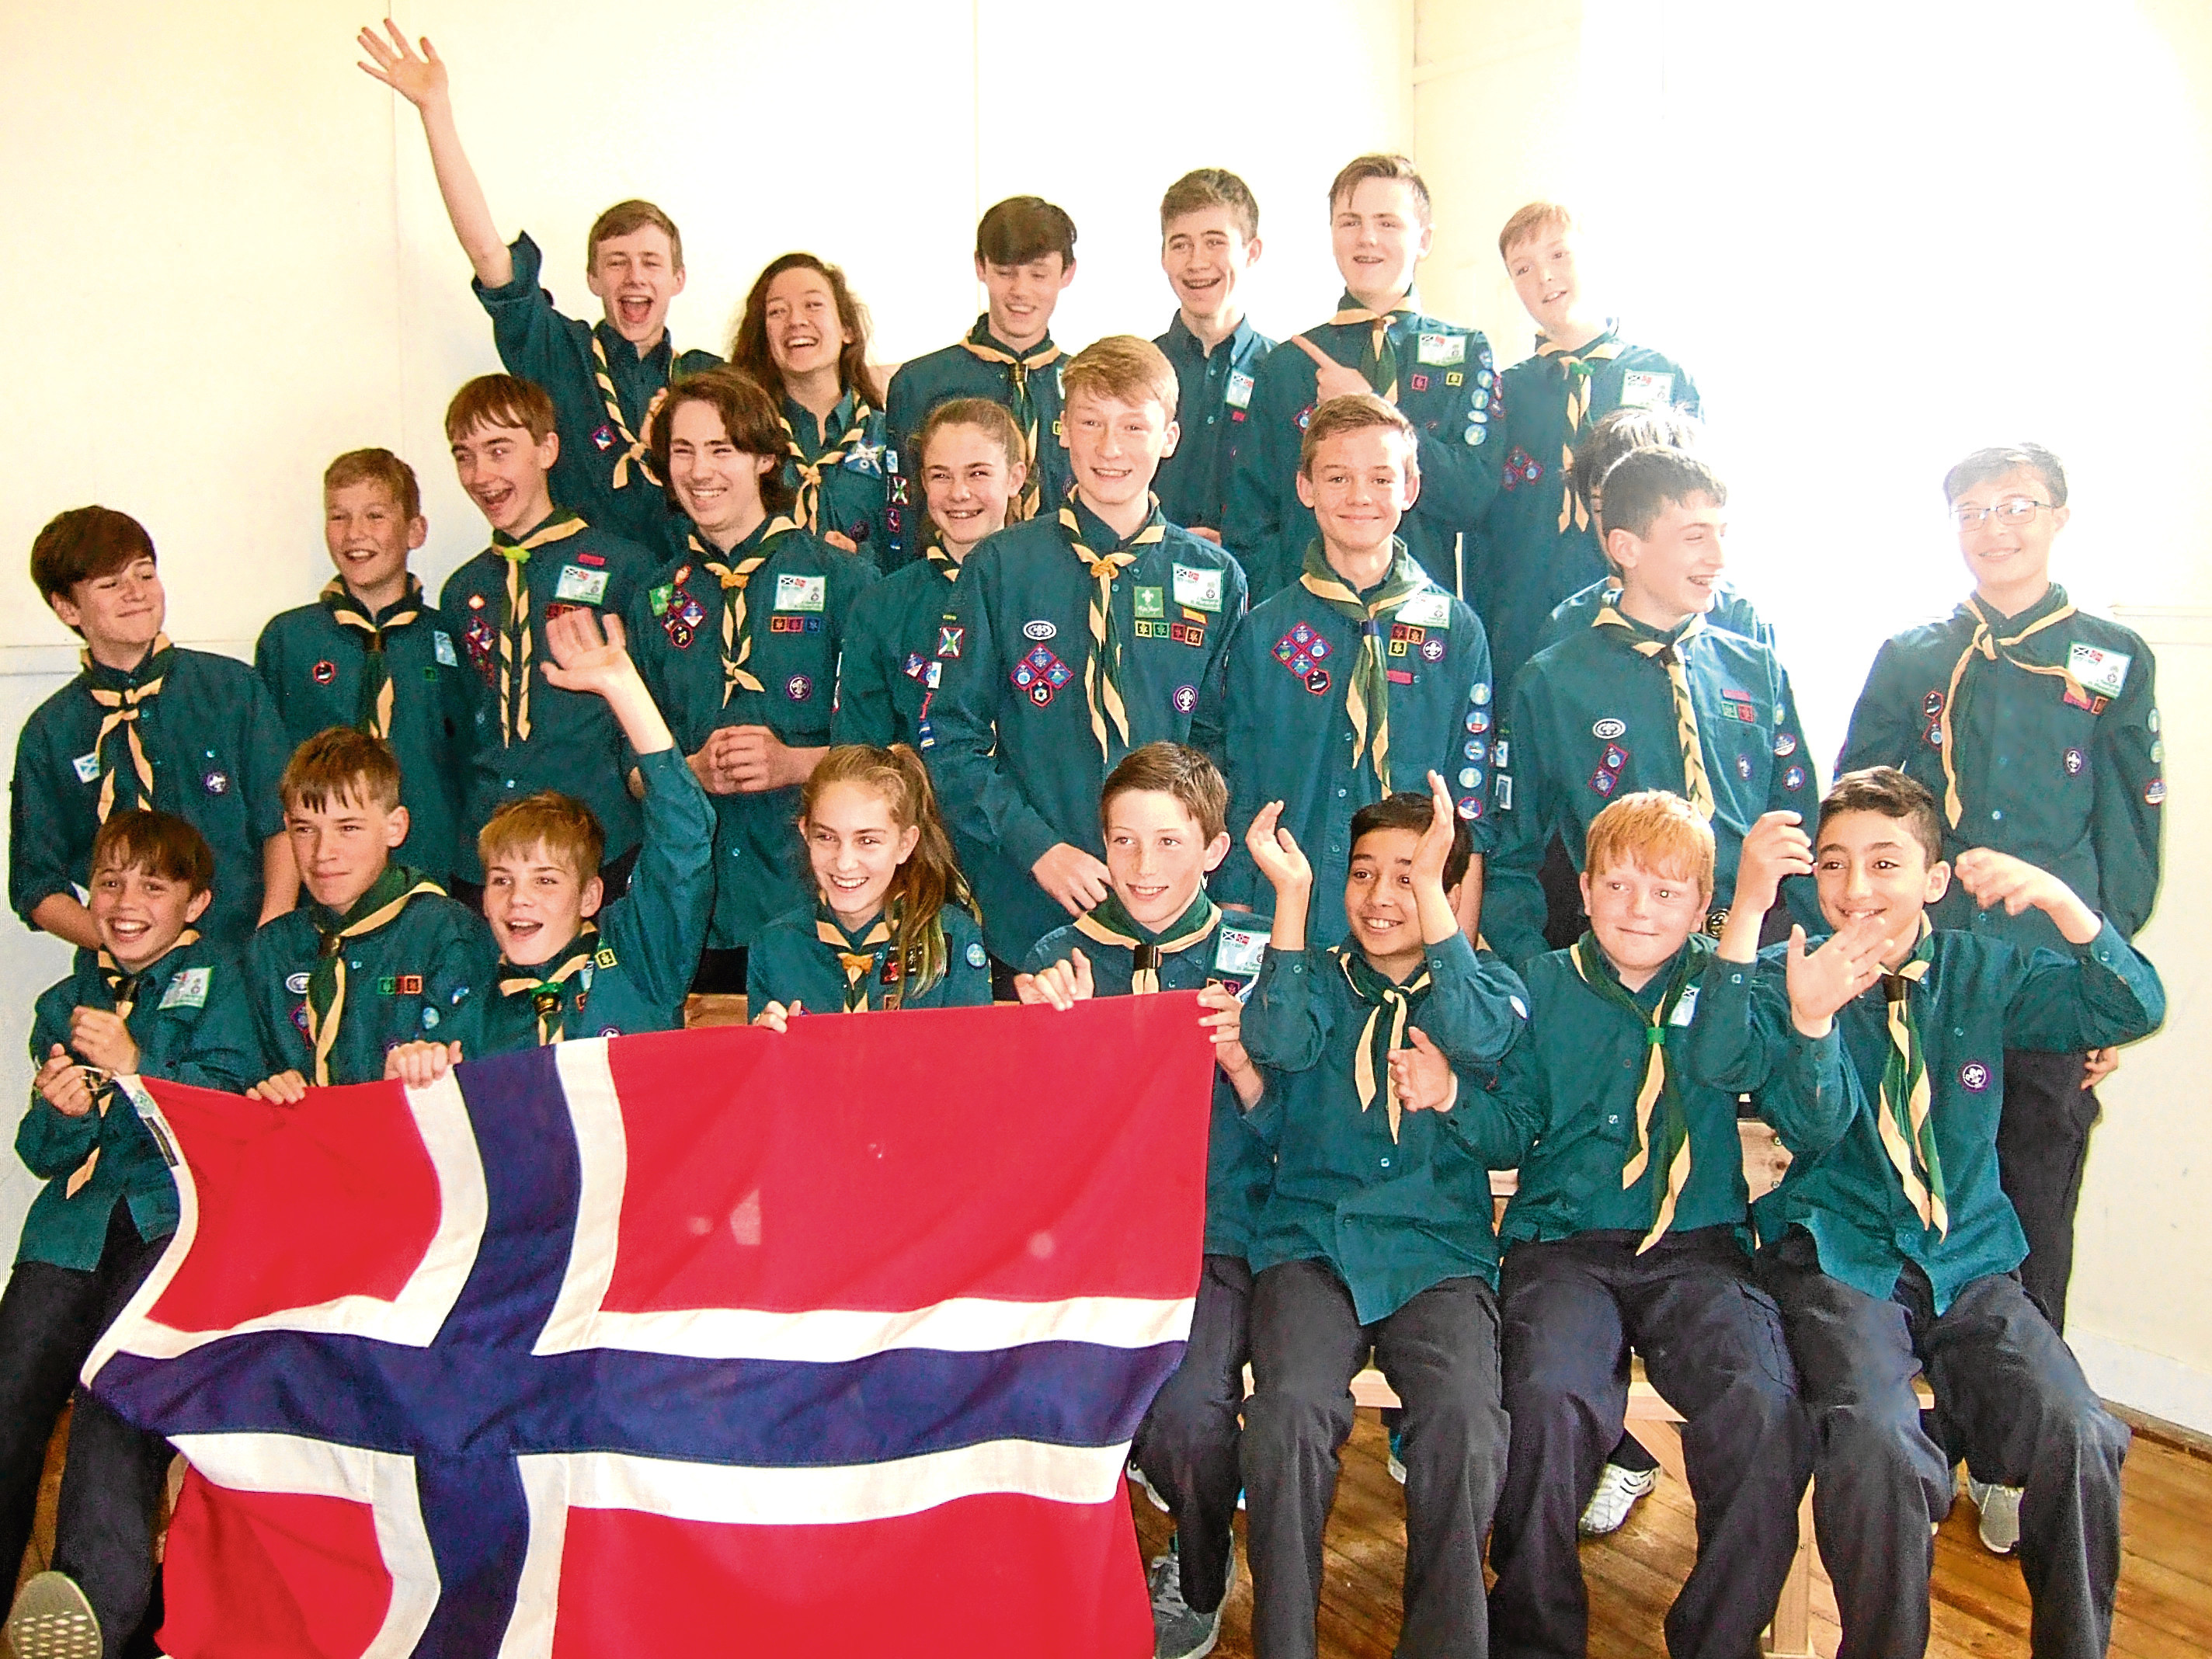 Some of the Scouts from 21st Aberdeen (Cults) group going to Norway.